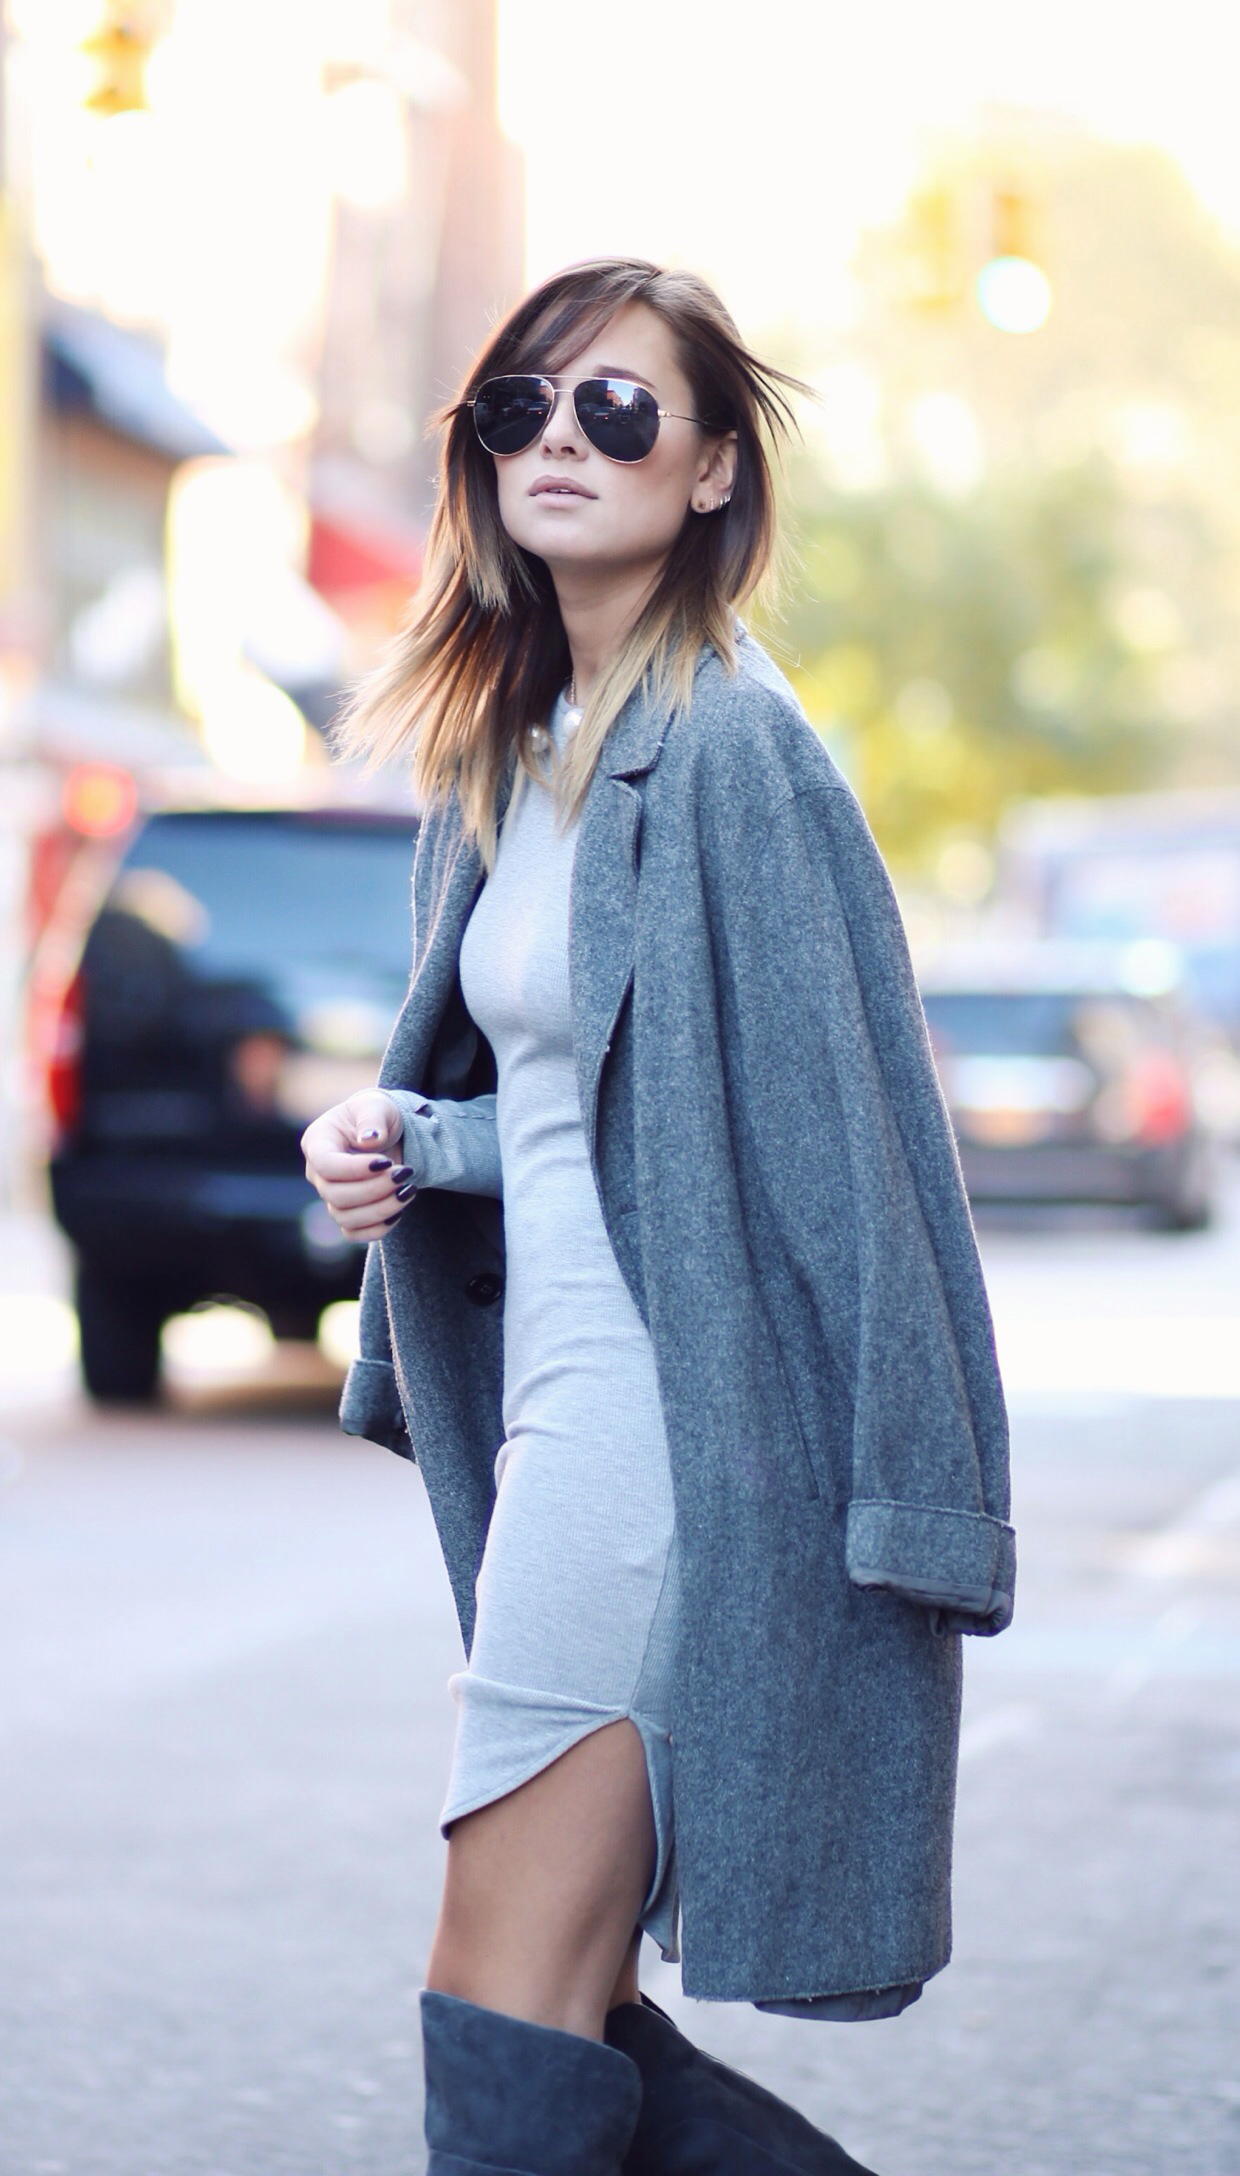 Danielle Bernstein is wearing grey on grey, dress from H&M and the coat is from Jil Sander